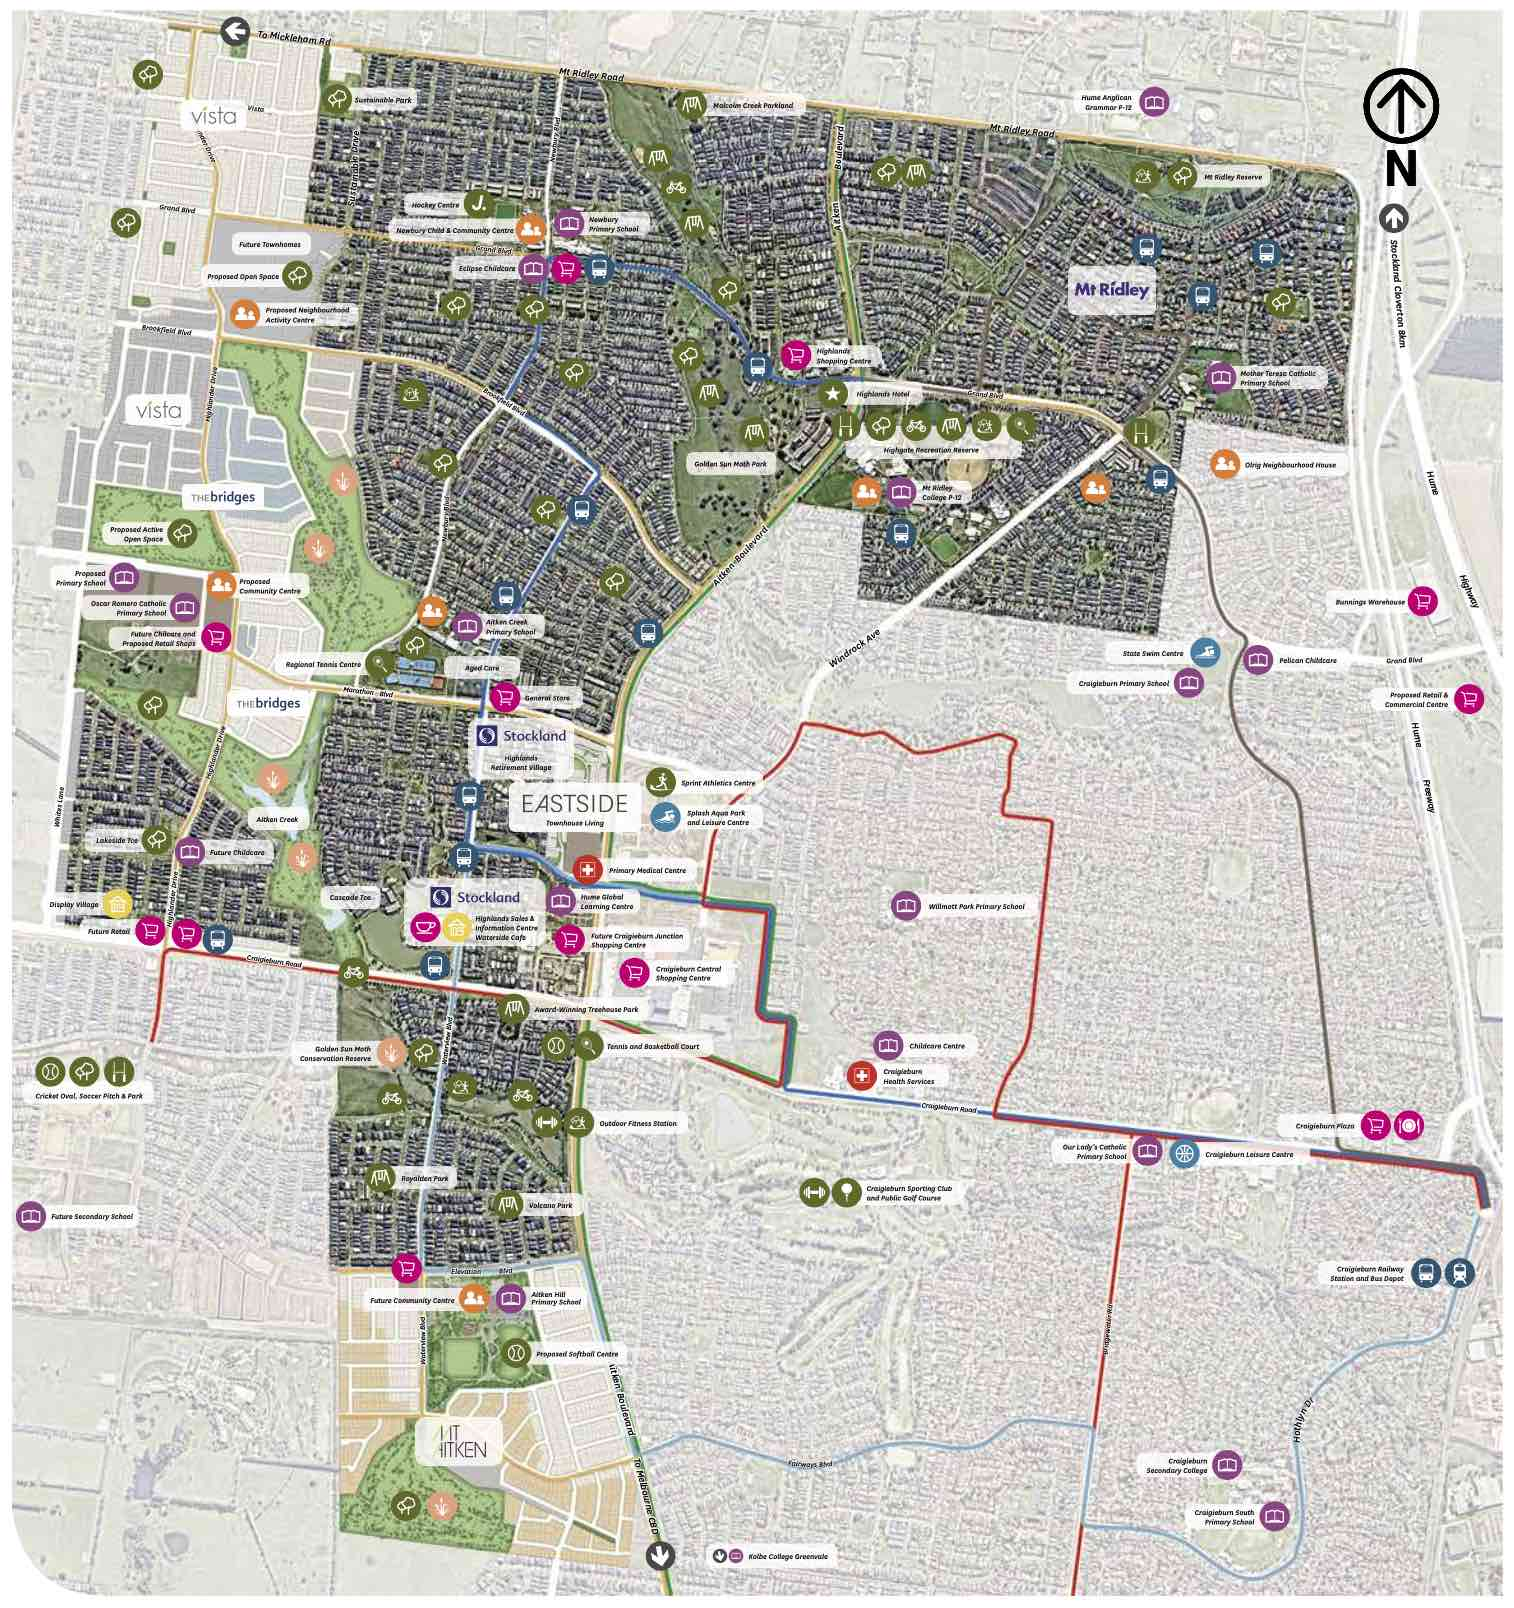 Highlands Craigieburn Masterplan